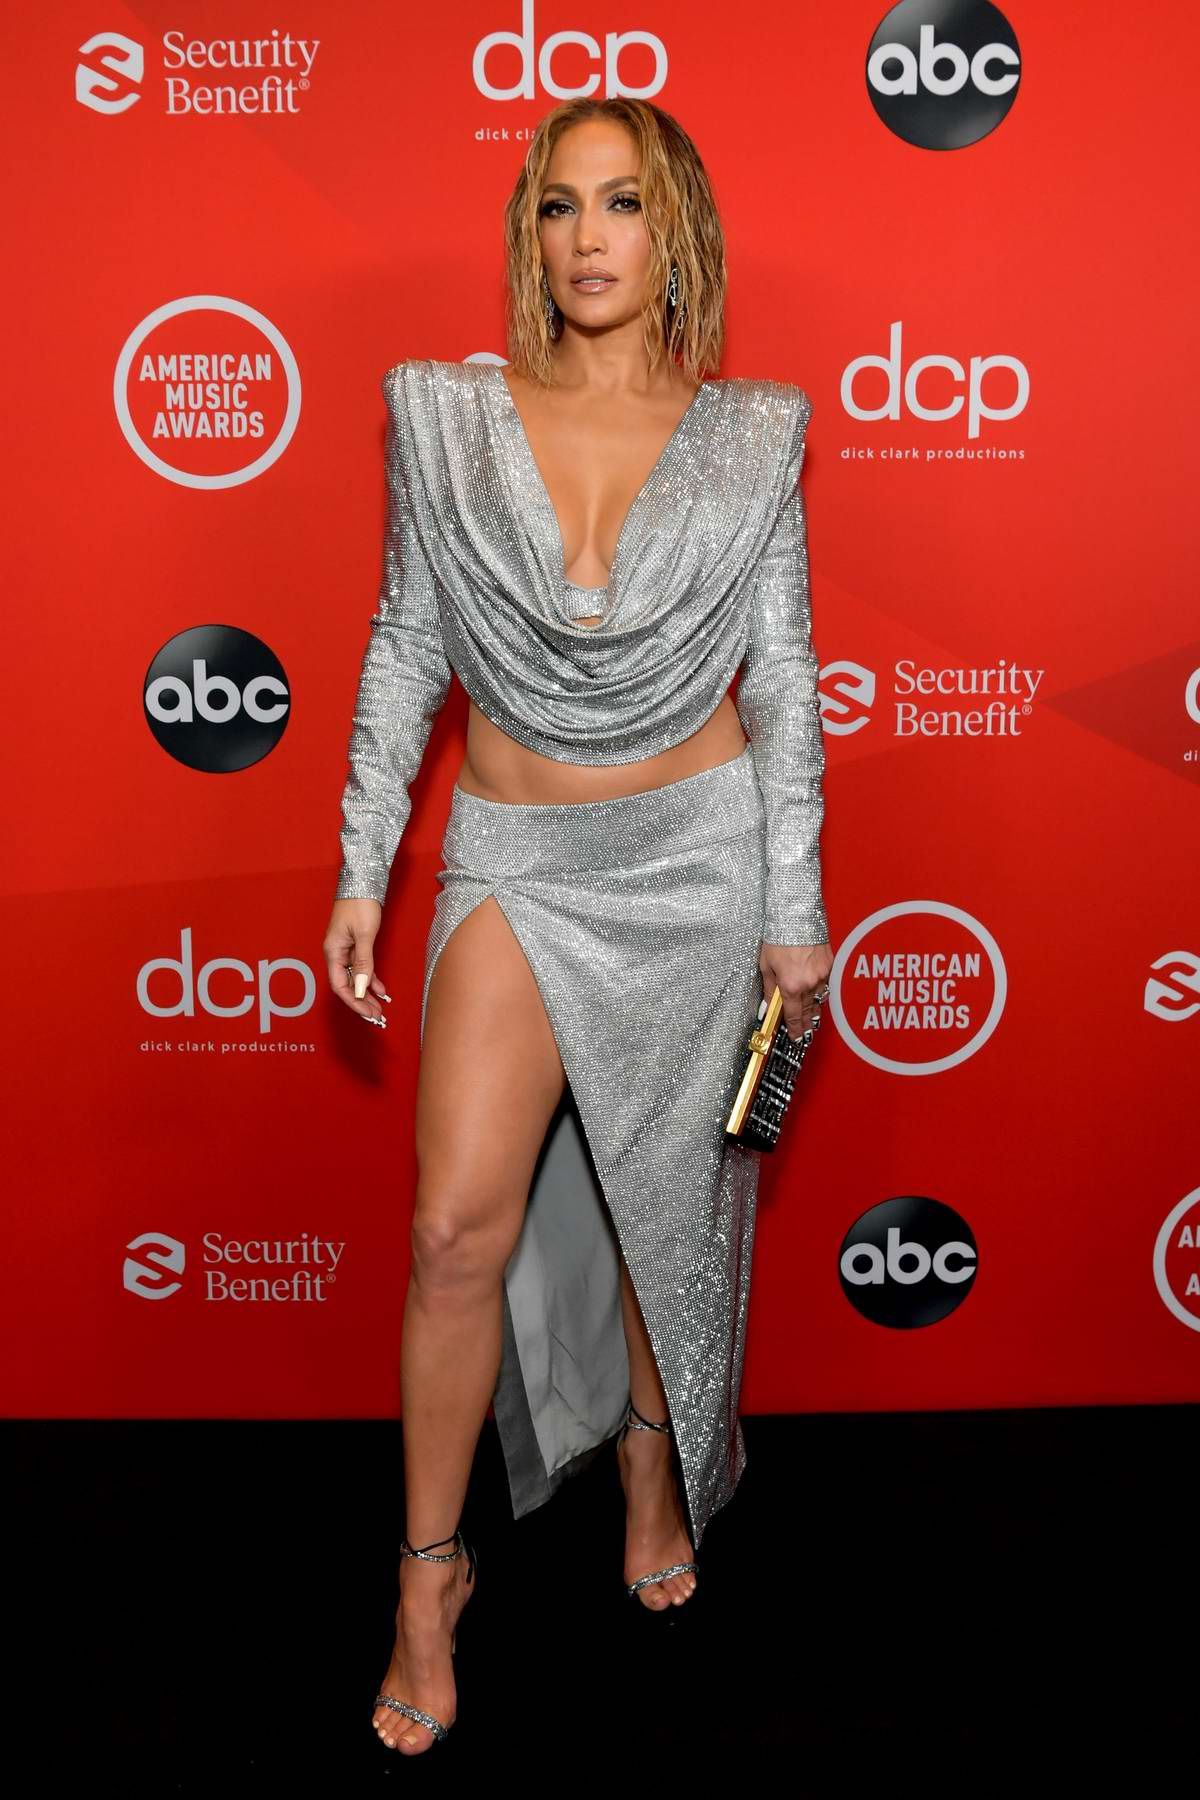 Jennifer Lopez attends the 2020 American Music Awards at the Microsoft Theater in Los Angeles